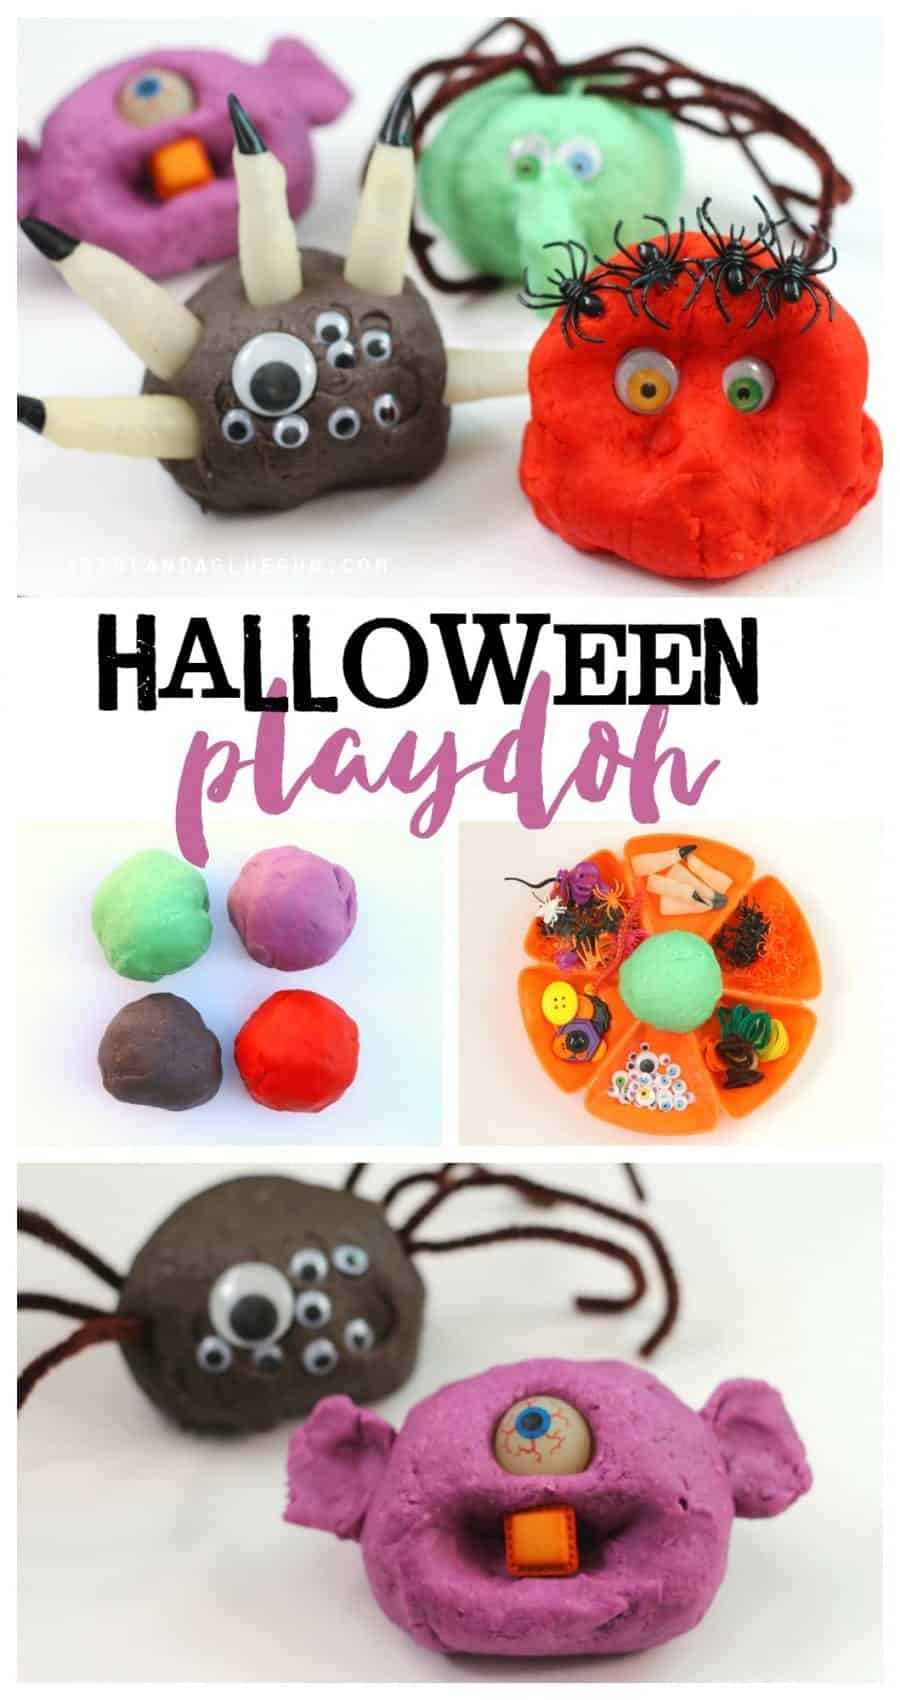 Halloween playdoh for a fun activity at classroom parties